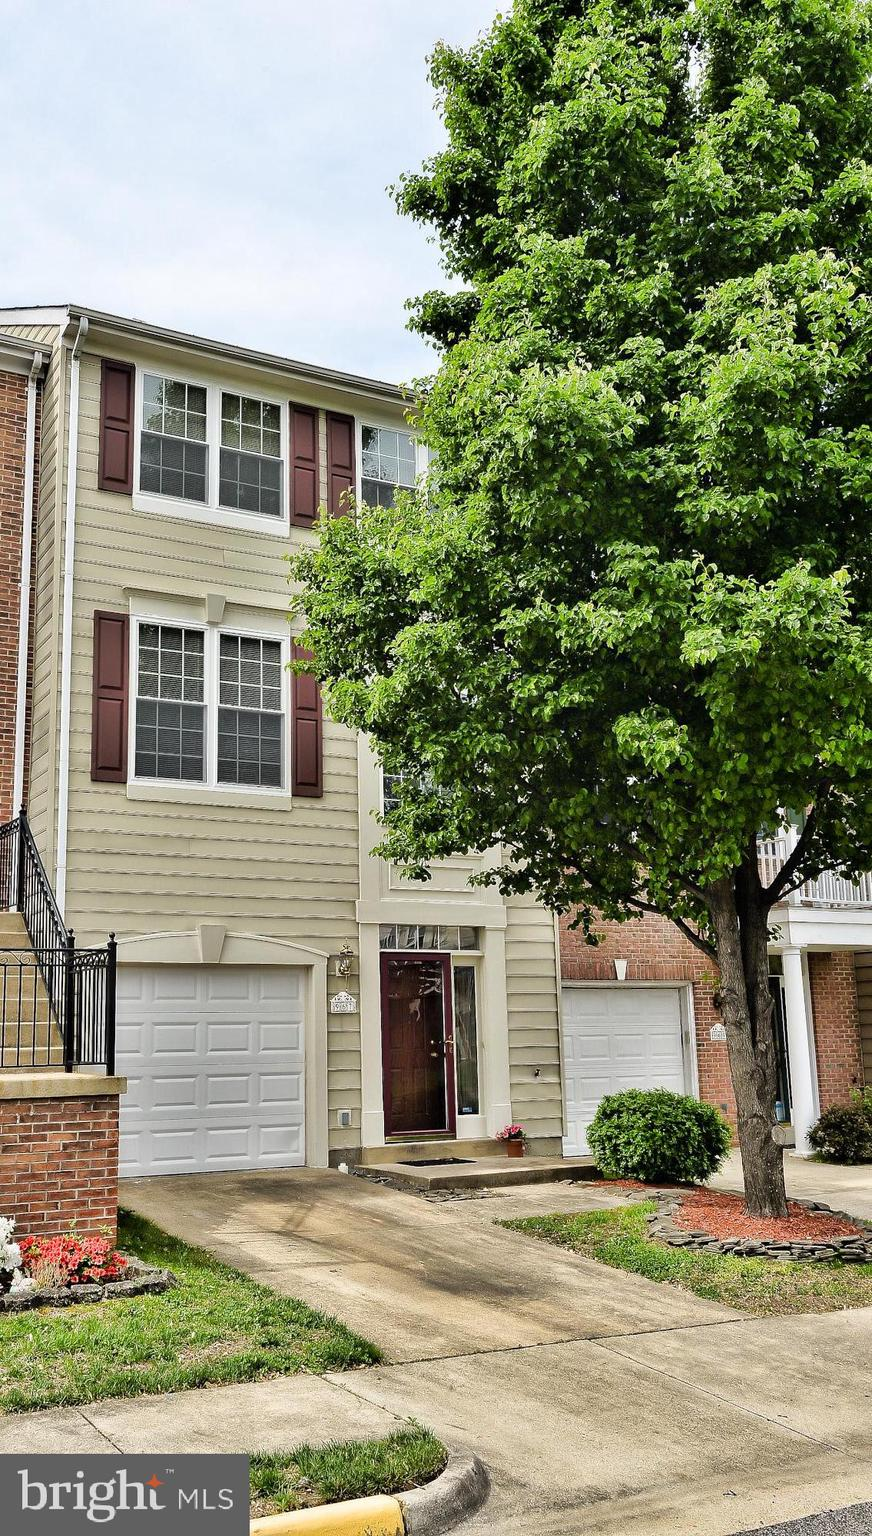 Commuter's dream!  Just blocks to VRE and minutes to OmniRide Express Bus to downtown DC & I95. This garage style town home is tucked in a quiet enclave yet enjoys all the amenities of Belmont Bay waterfront community at an affordable price.  Built-in's on every level, nooks and crannies provide tons of storage options.  Large kitchen with center island, granite counter tops and stainless steel appliances features a gas fireplace to cozy up with coffee on cold mornings or adult beverage after a long day.  This open kitchen space can be used as a breakfast room or family room and leads to a brand, new deck for grilling.  Hardwood floors on main level and palladium window offers tons of natural light.  Master bedroom with en-suite bath includes separate shower and soaking tub.  Lower level with family room & gas fireplace walks out to lower deck and newly stained privacy fence.  Front windows were replaced with Thompson Creek double pane.  HVAC system 3 yrs young.  Enjoy dining in nearby Occoquan, bike & jogging paths throughout the community & don't forget your binoculars for spotting osprey & a variety of wildlife in Occoquan Bay National Wildlife Refuge.